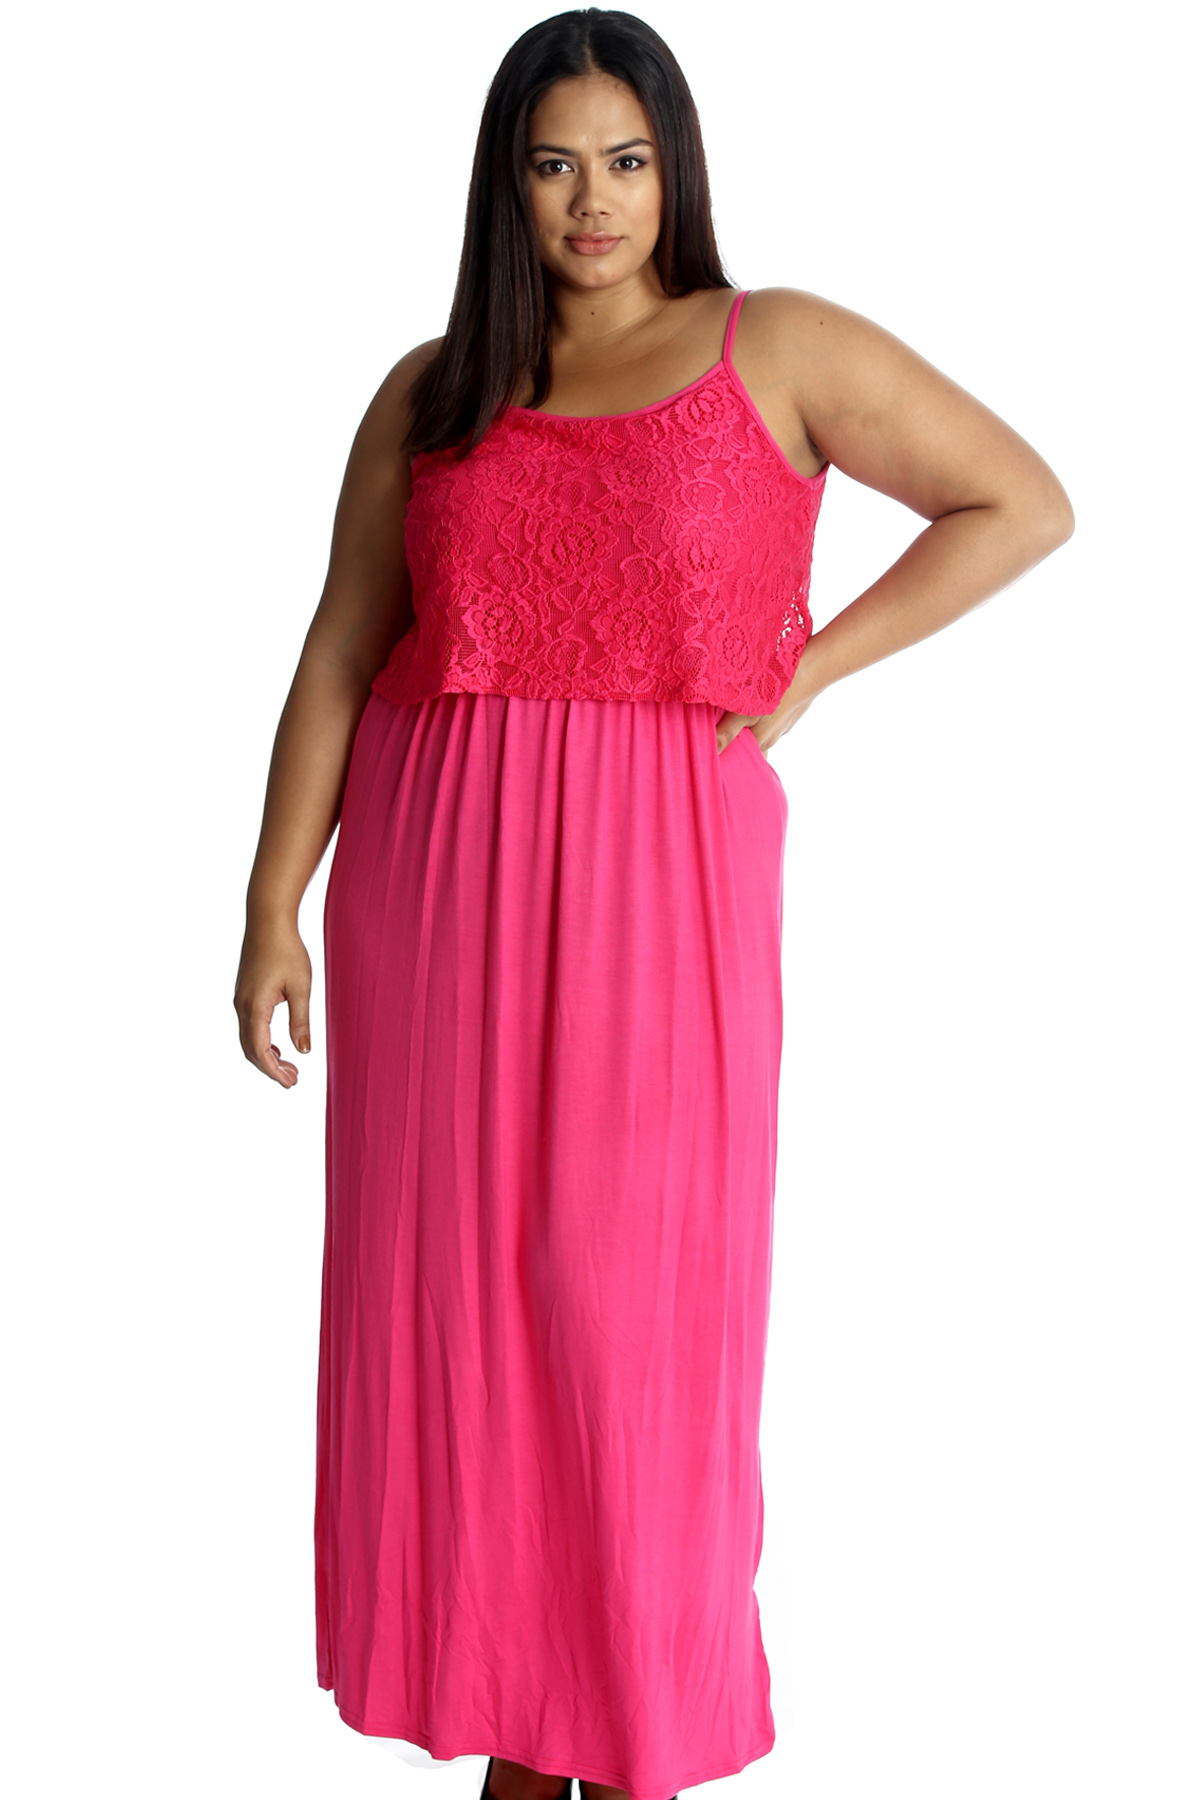 New Womens Maxi Dress Plus Size Ladies Floral Lace Full